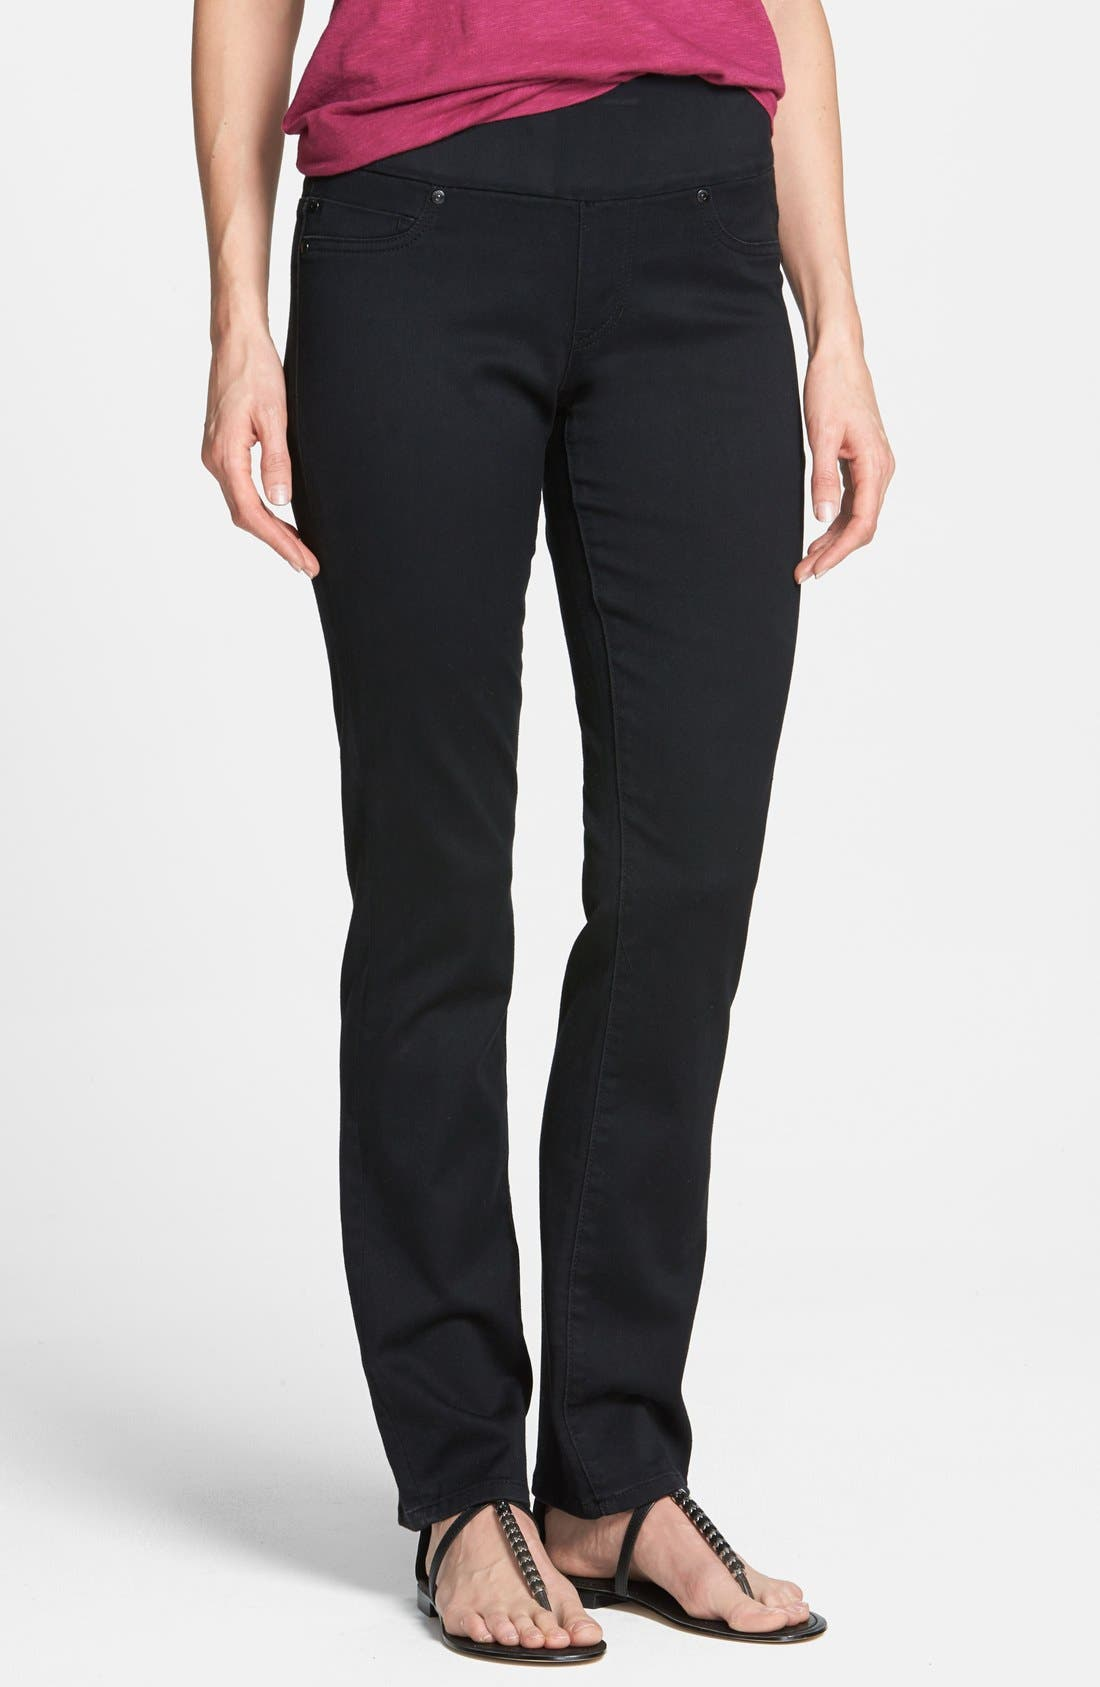 Alternate Image 1 Selected - Liverpool Jeans Company 'Jillian' Pull-On Straight Leg Jeans (Black Rinse)